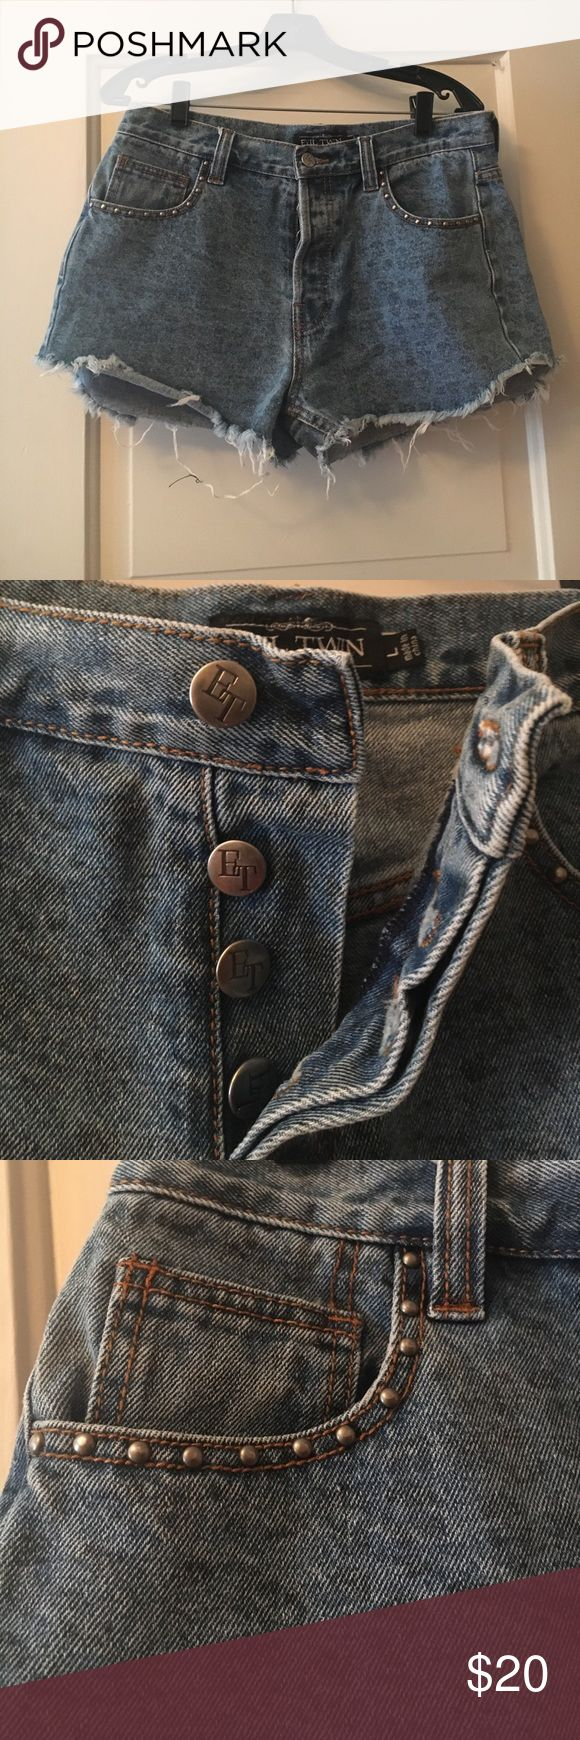 Evil Twin button-fly denim shorts Evil twin distressed style Denim shorts with faint leopard pattern. Worn a few times but great shorts! No longer fit. No stains, rips, or visible wear. Evil Twin Shorts Jean Shorts